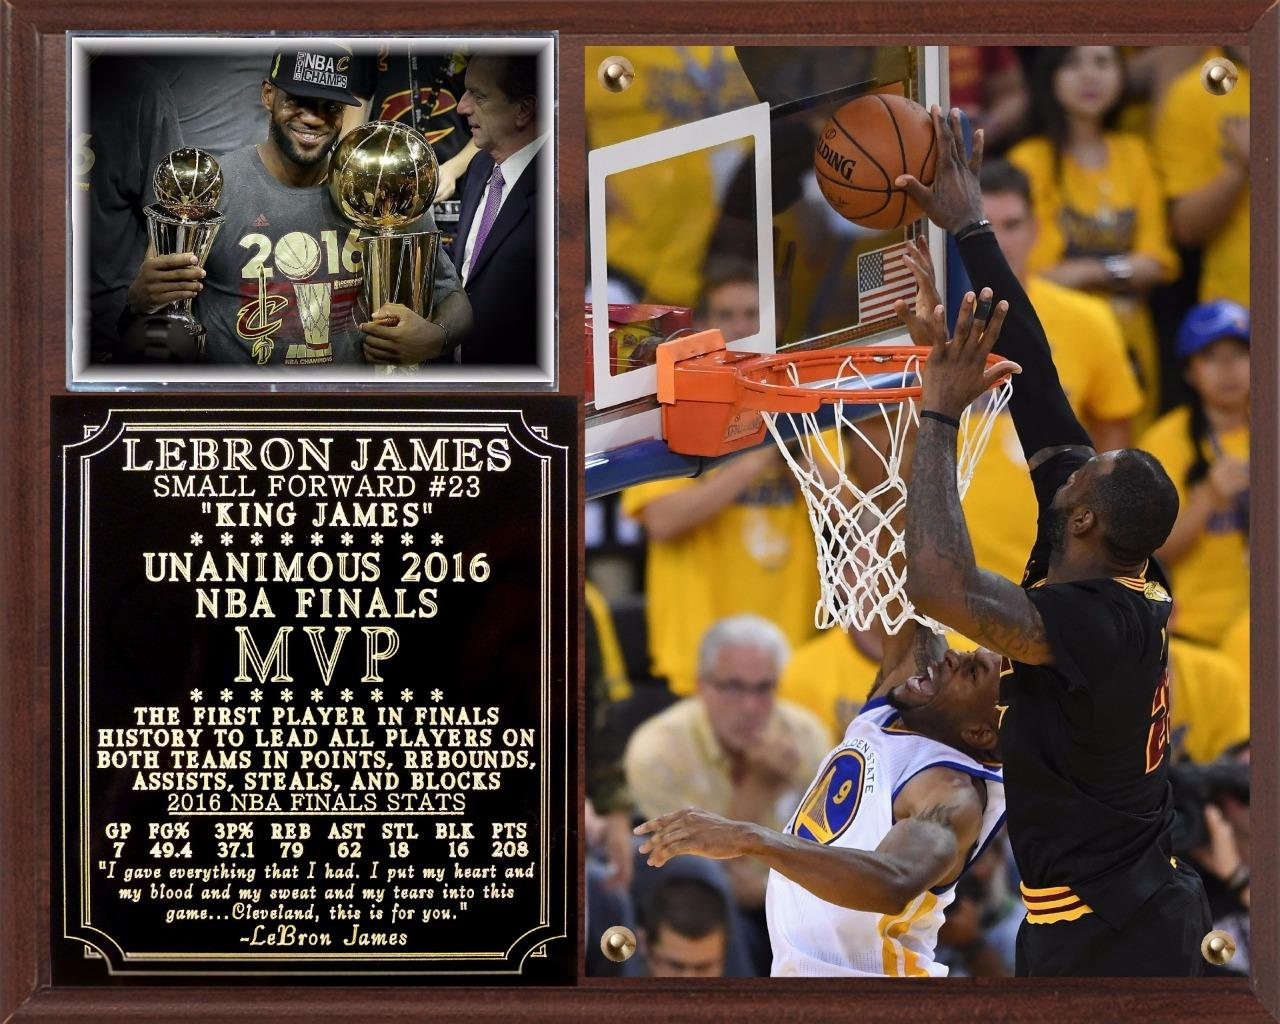 LeBron James 2016 NBA Finals MVP Photo Plaque Cleveland Cavaliers | eBay